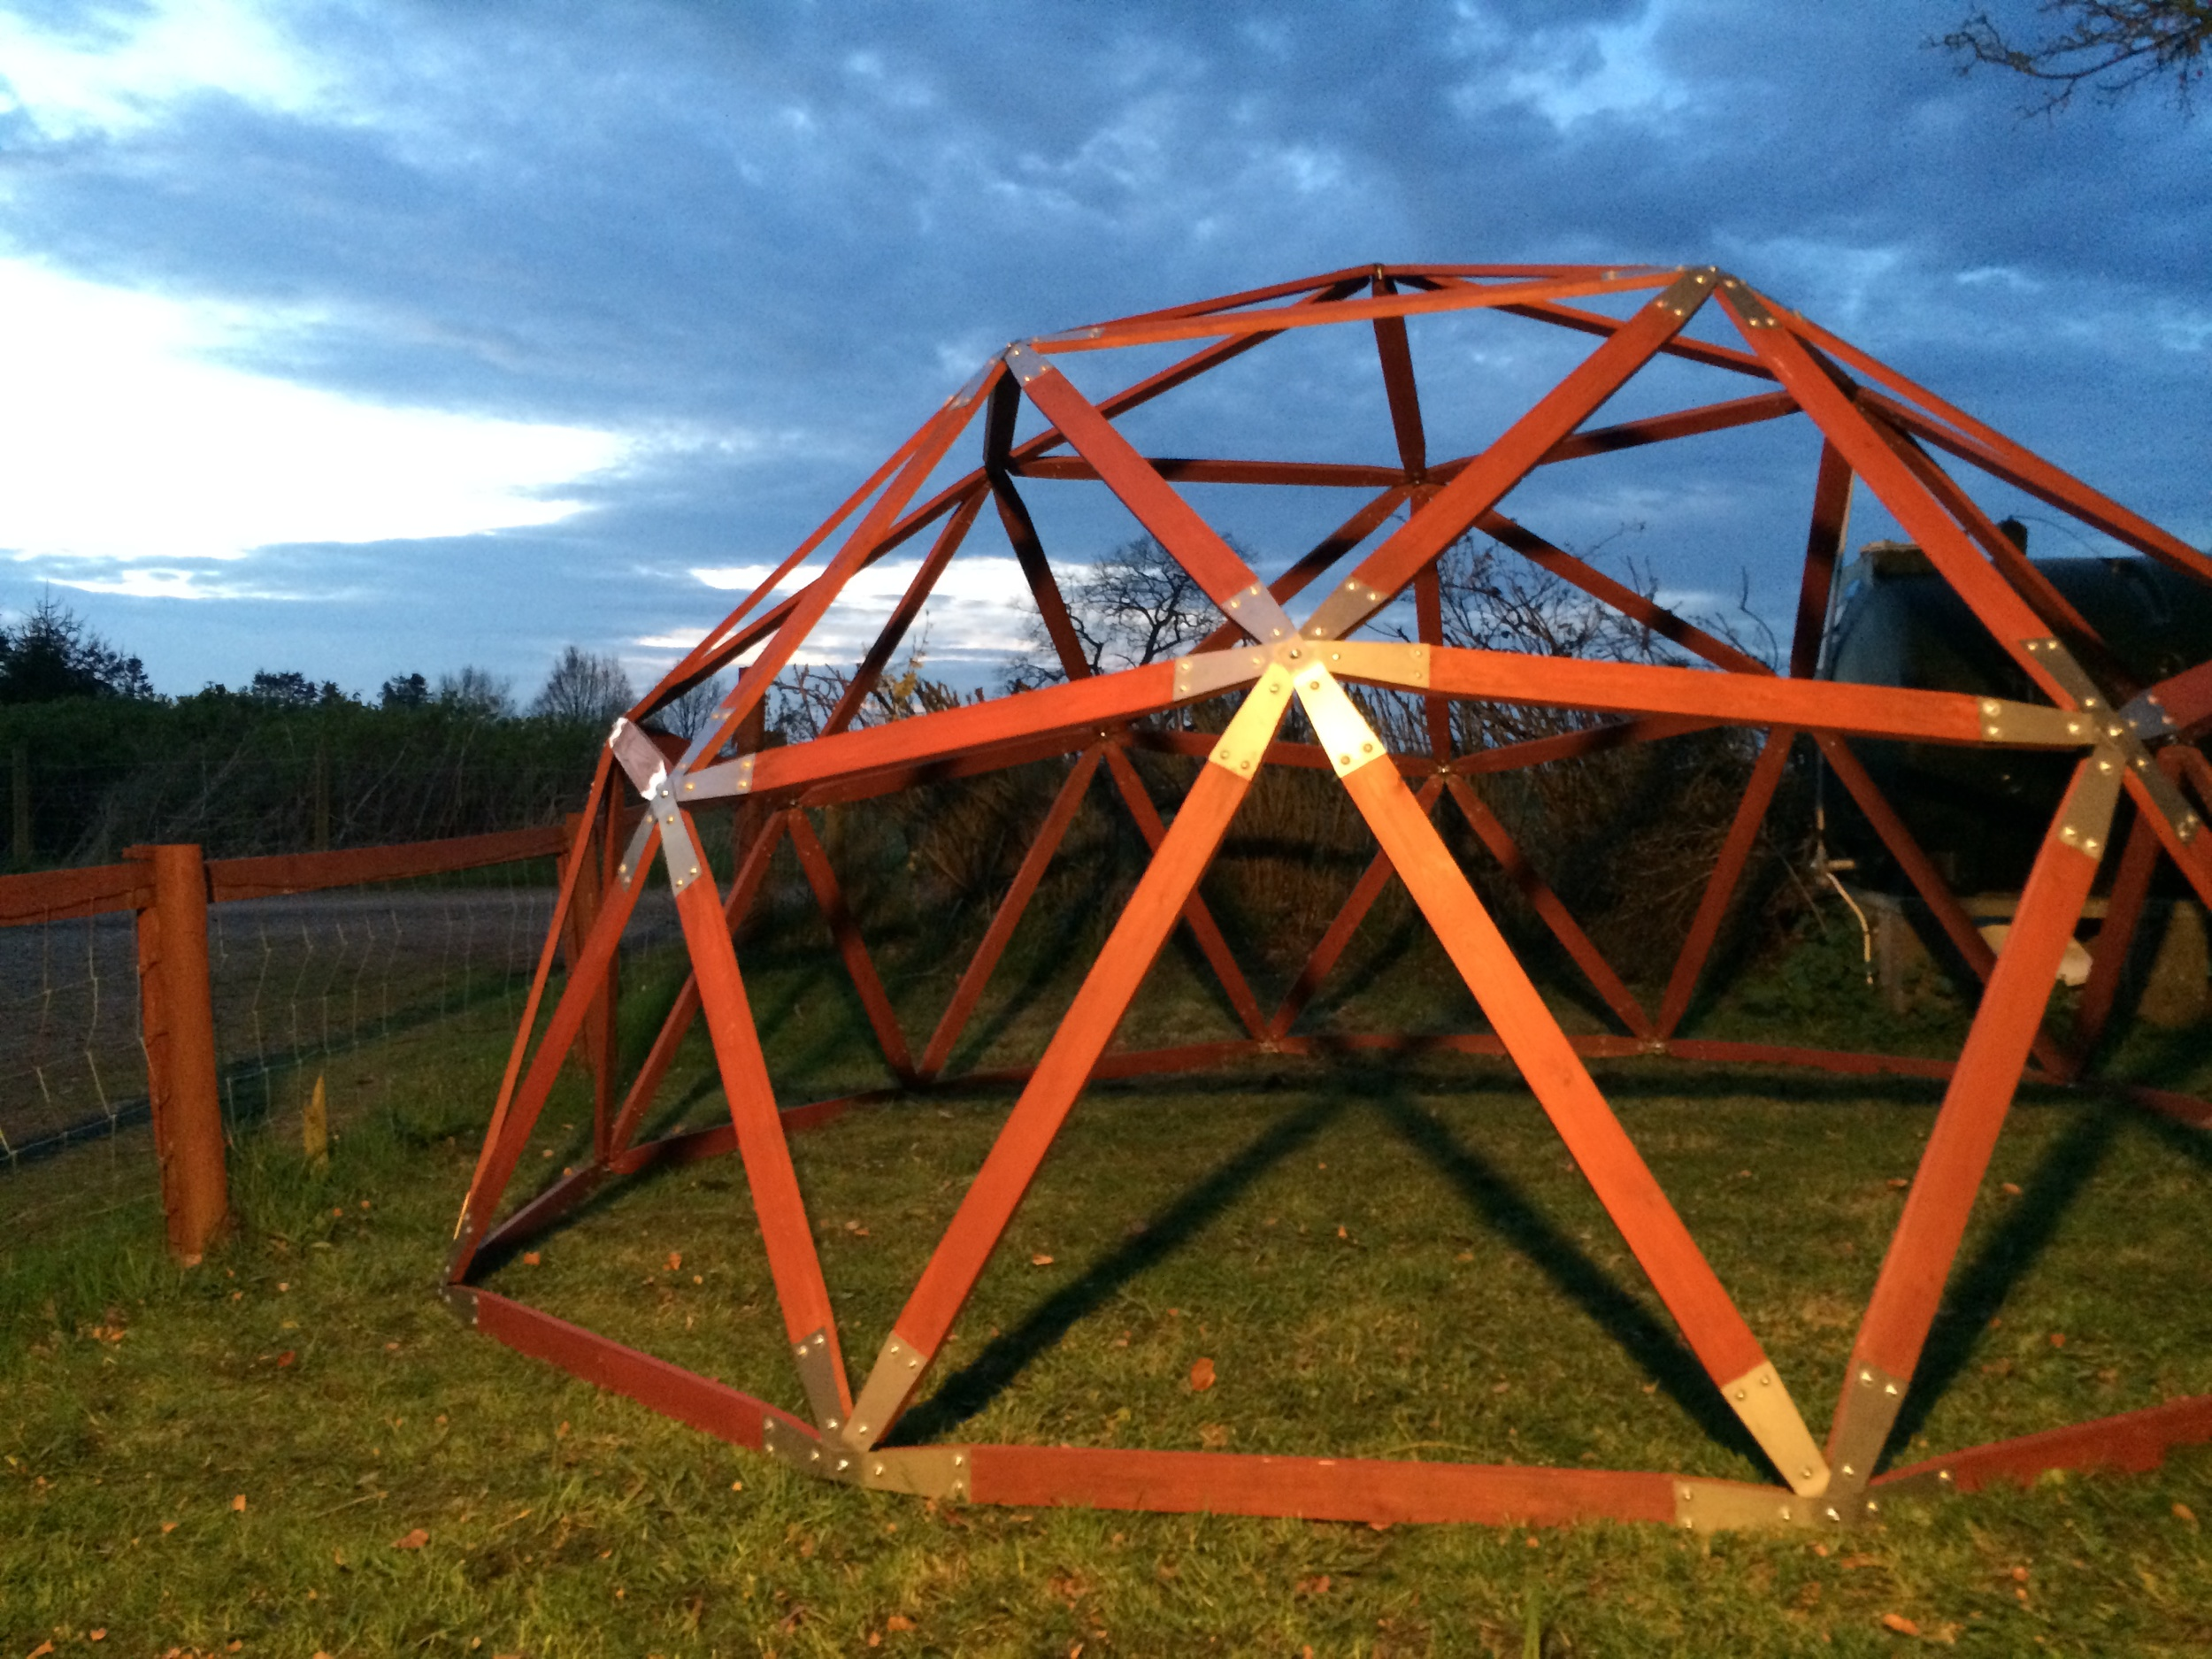 The Geodesic dome frame provided by domemade forms the basis for the whole build and they can be adapted to create your own unique look.